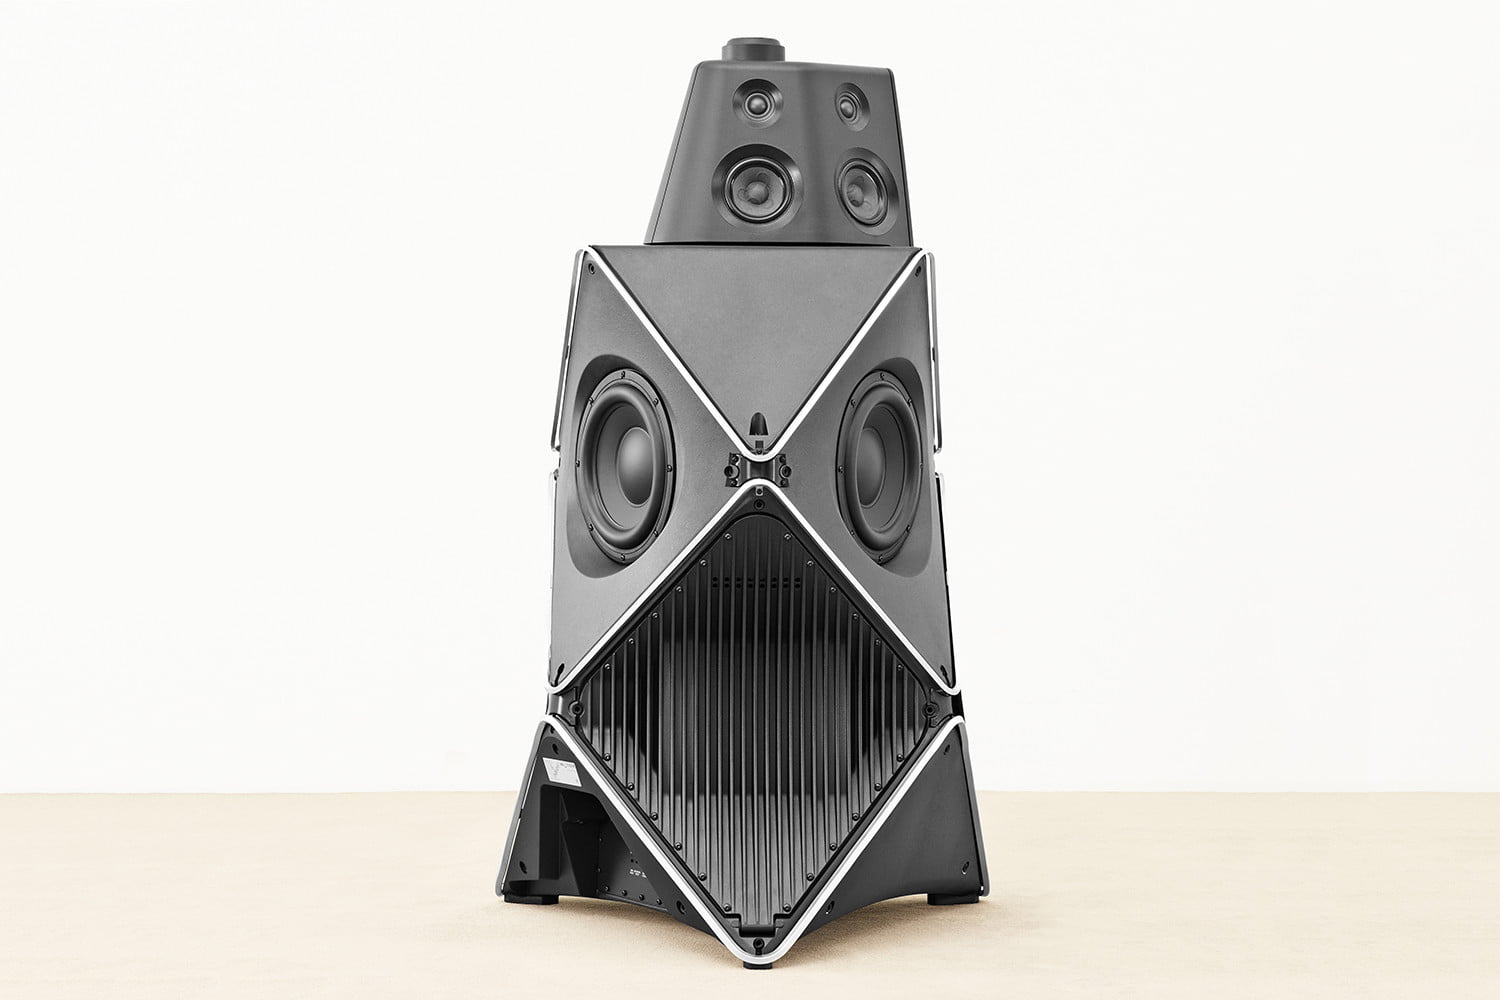 bang and olufsen beolab 90 speakers sweet spot 15cs me08